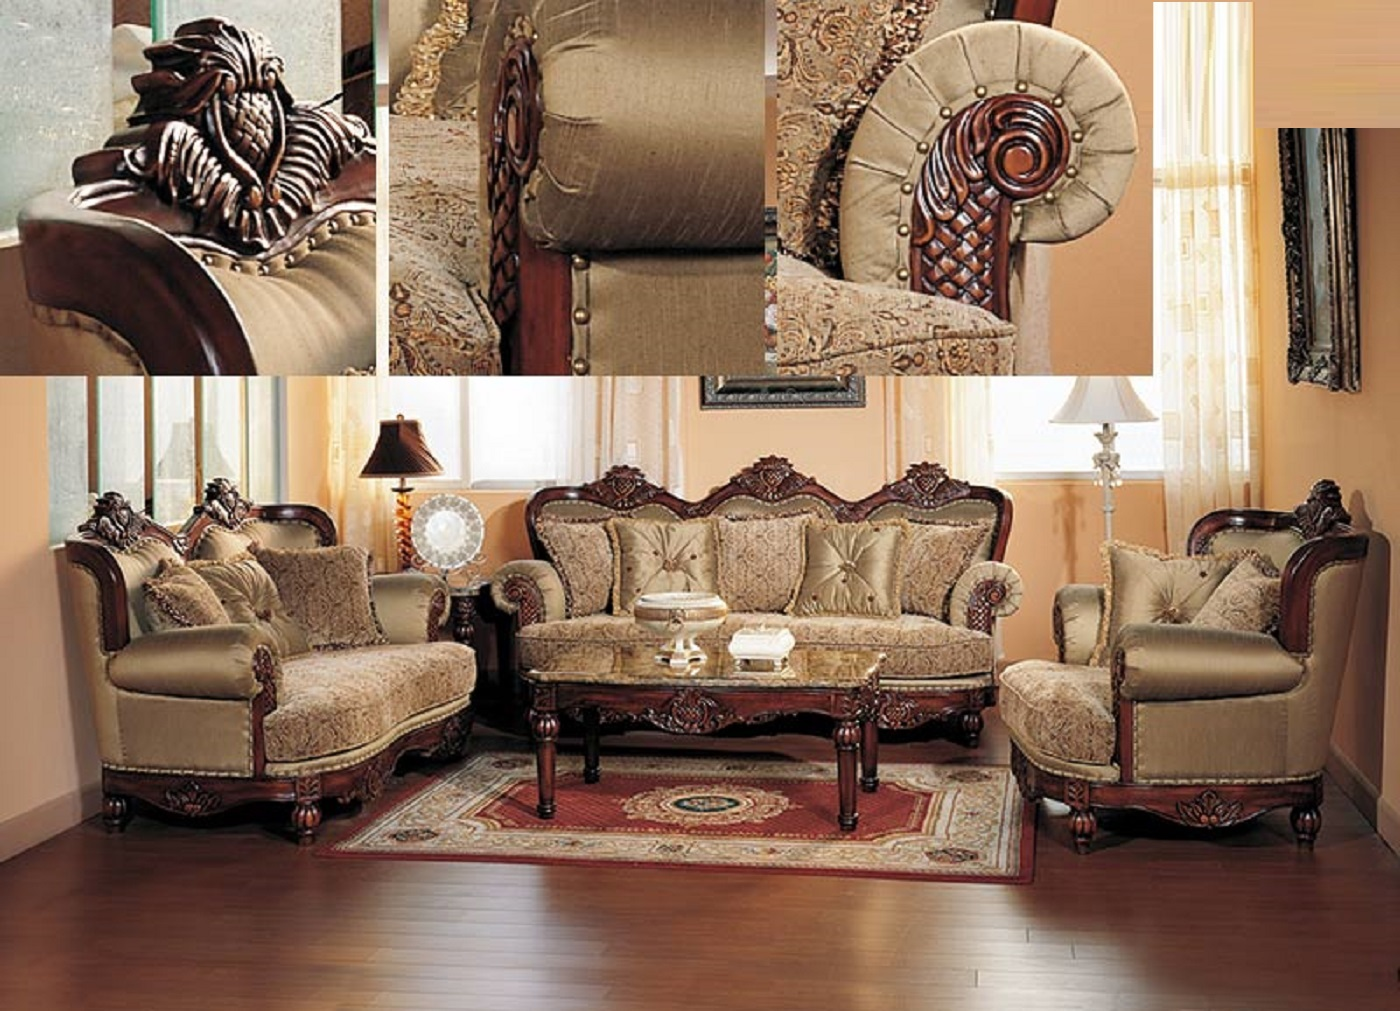 Antique Formal Traditional Sofa Set Sofa Couch Chair Living Room Set